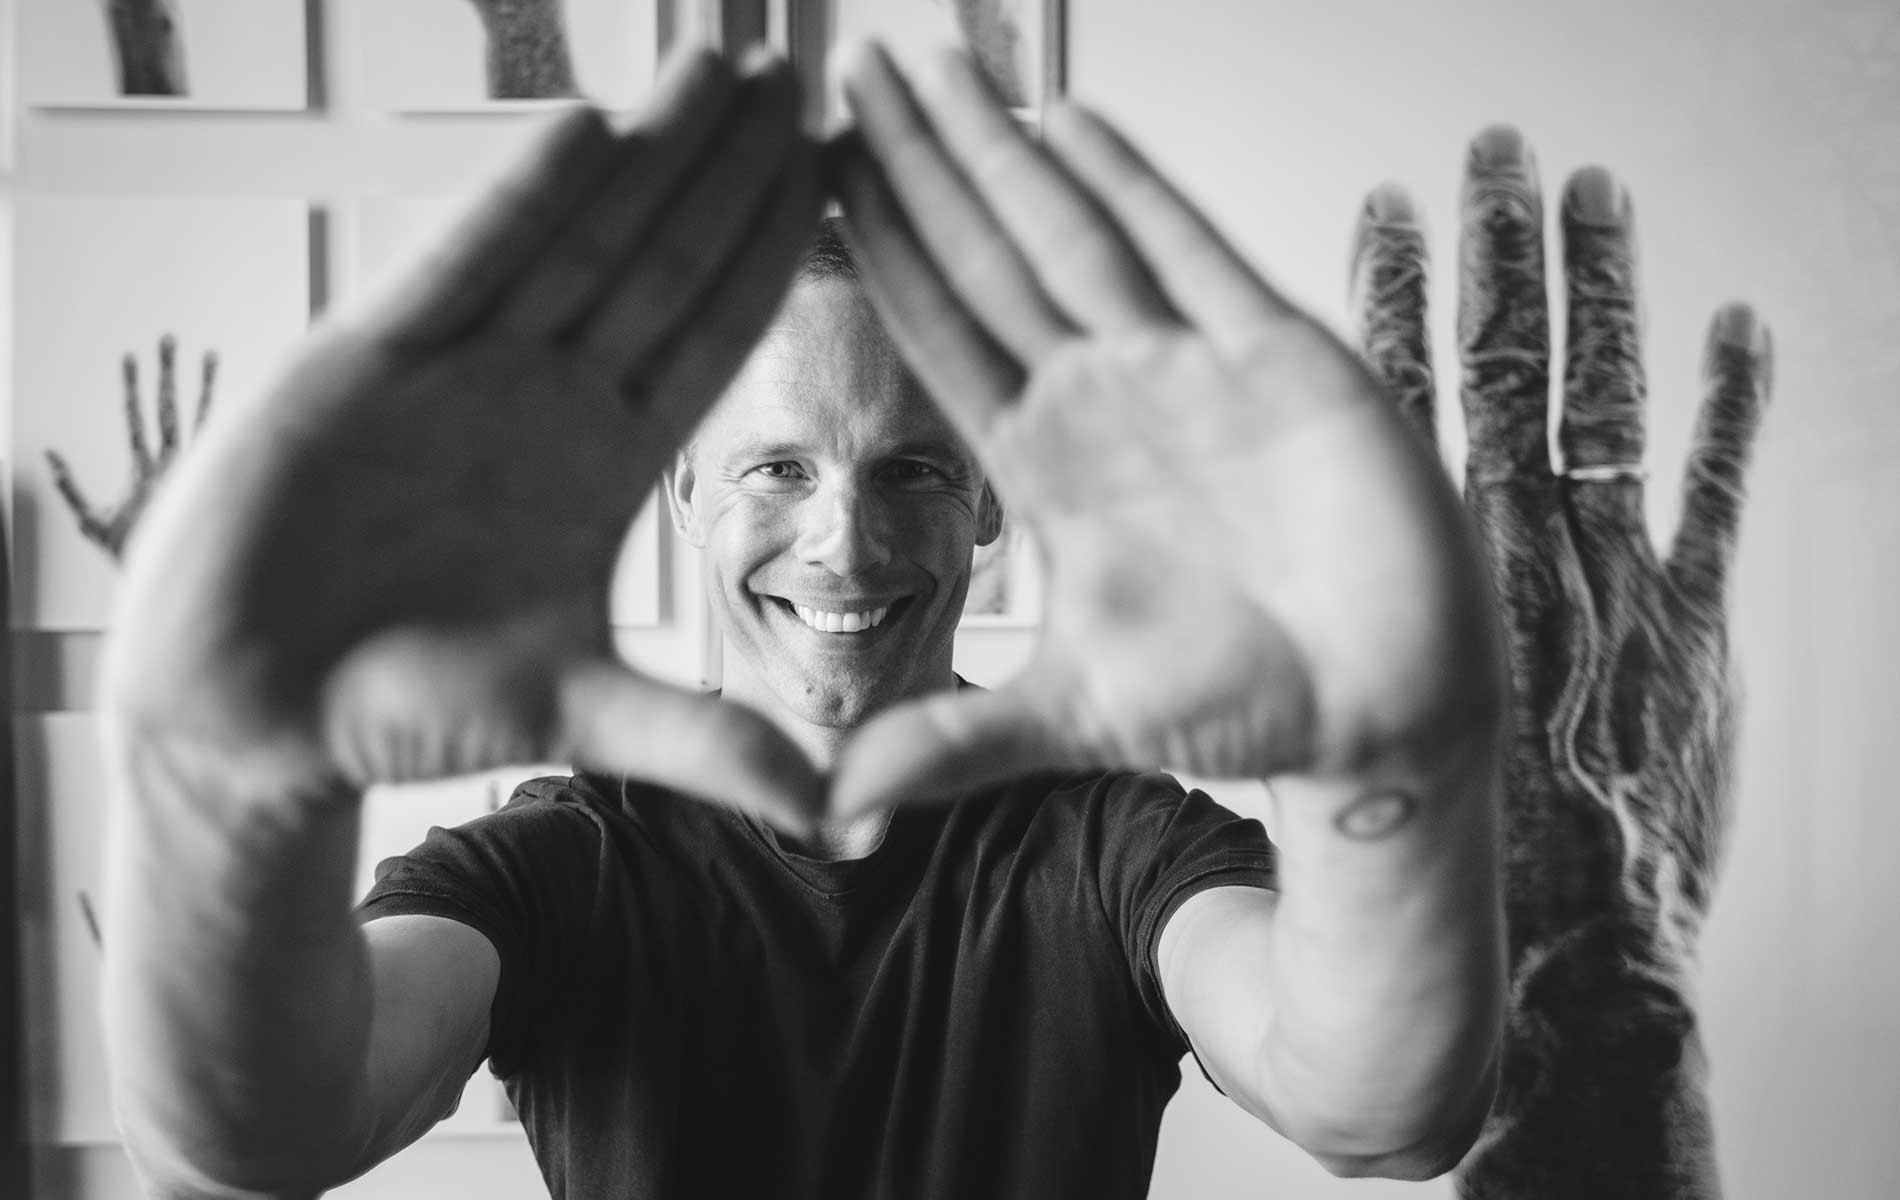 vie-magazine-stefan-hands-and-lives-feature